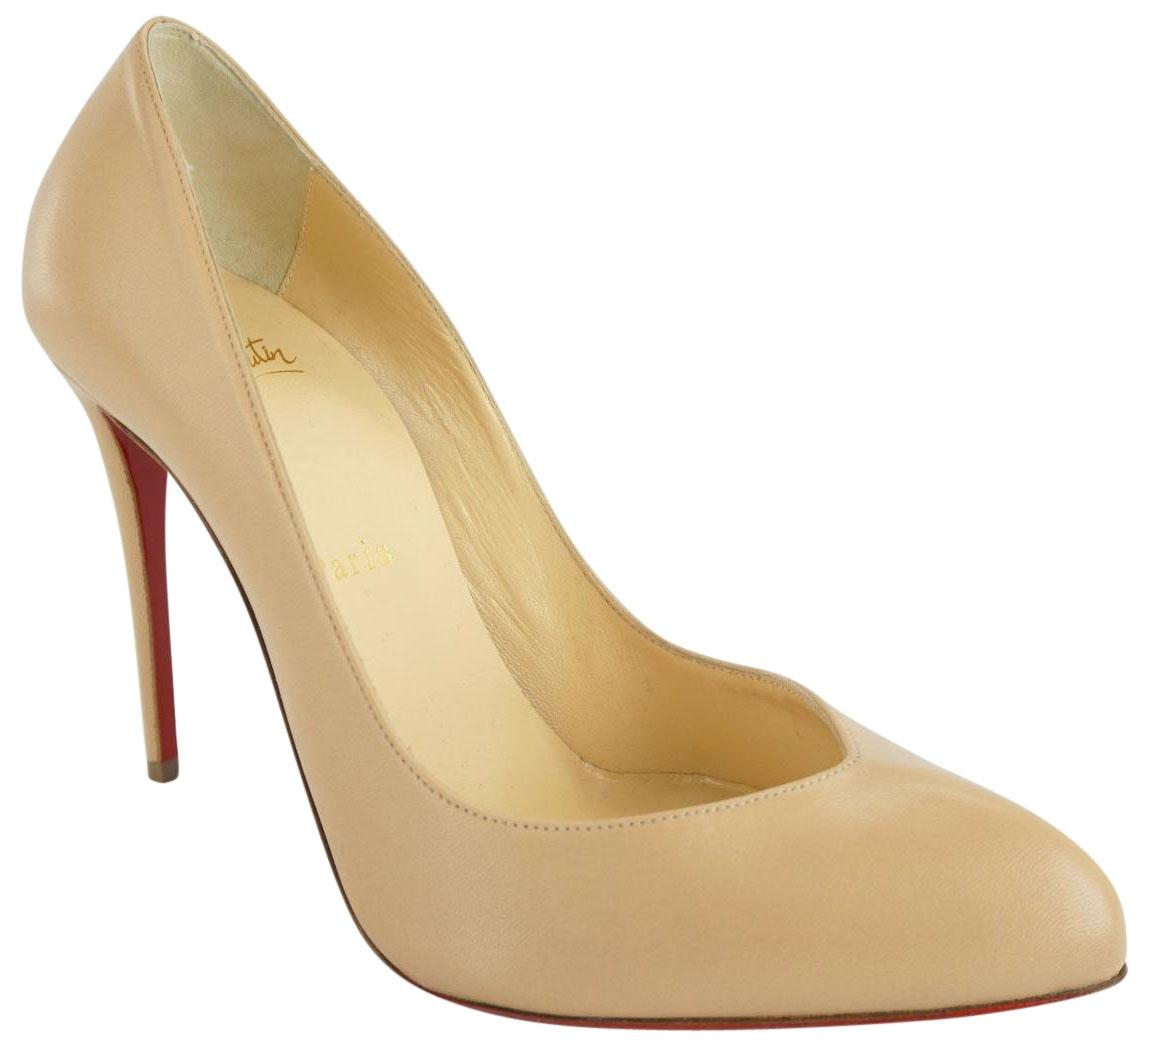 Christian Louboutin Beige Nude Leather Breche High Heel Pointed Pumps Size EU 37.5 (Approx. US 7.5) Regular (M, B)